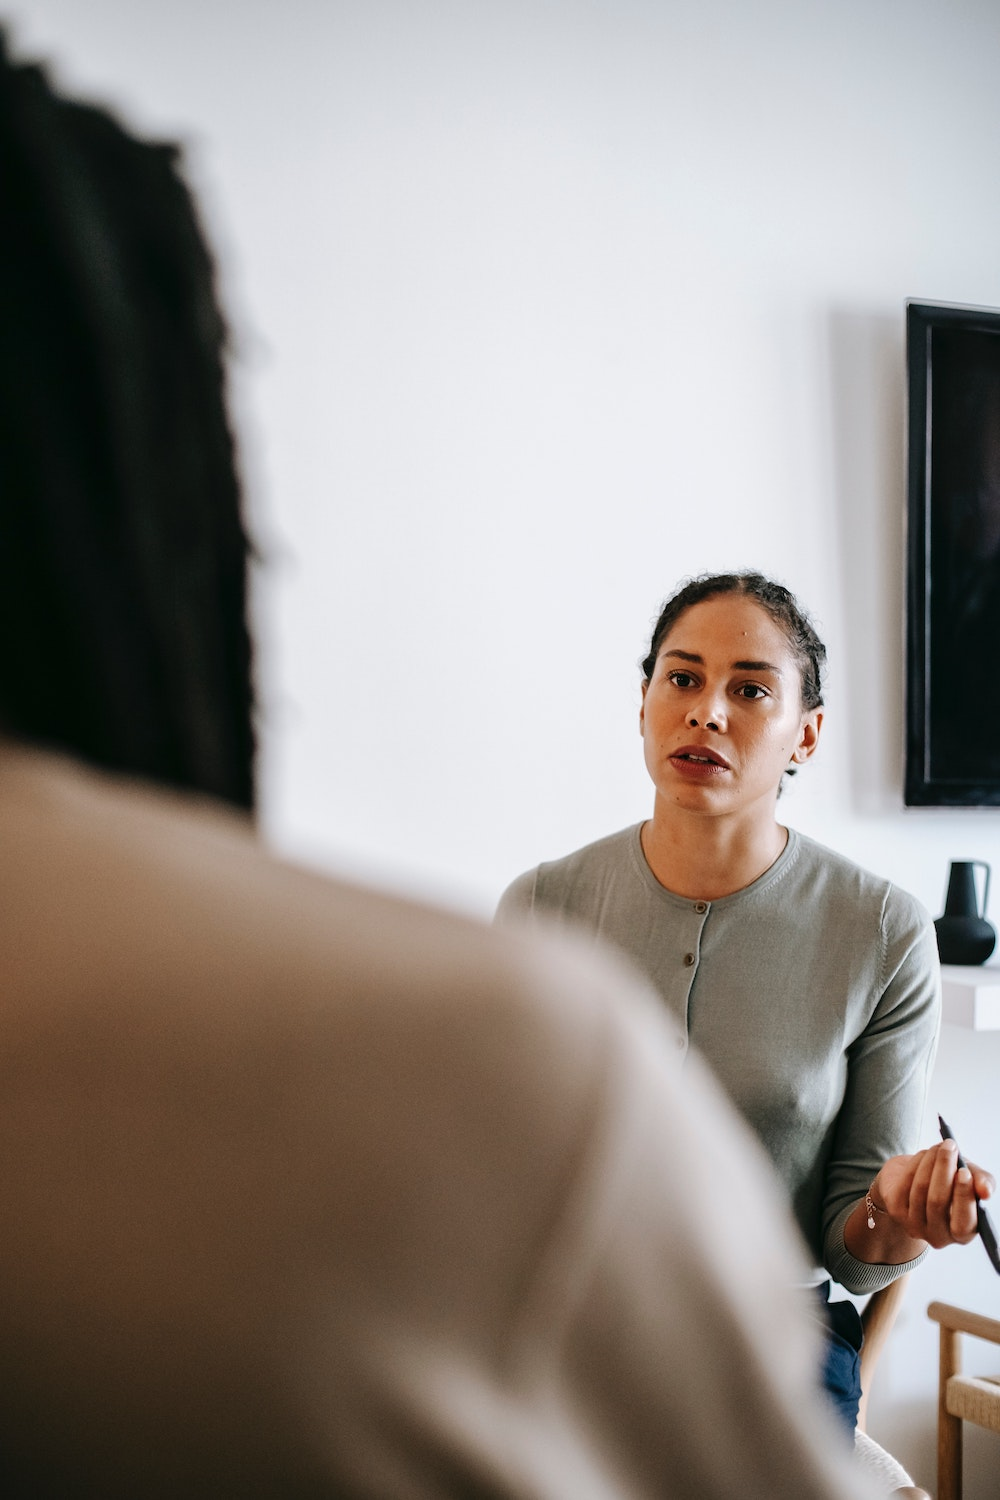 Women looking to a colleague, looking distressed, which often prompts people to overuse vocal fillers.